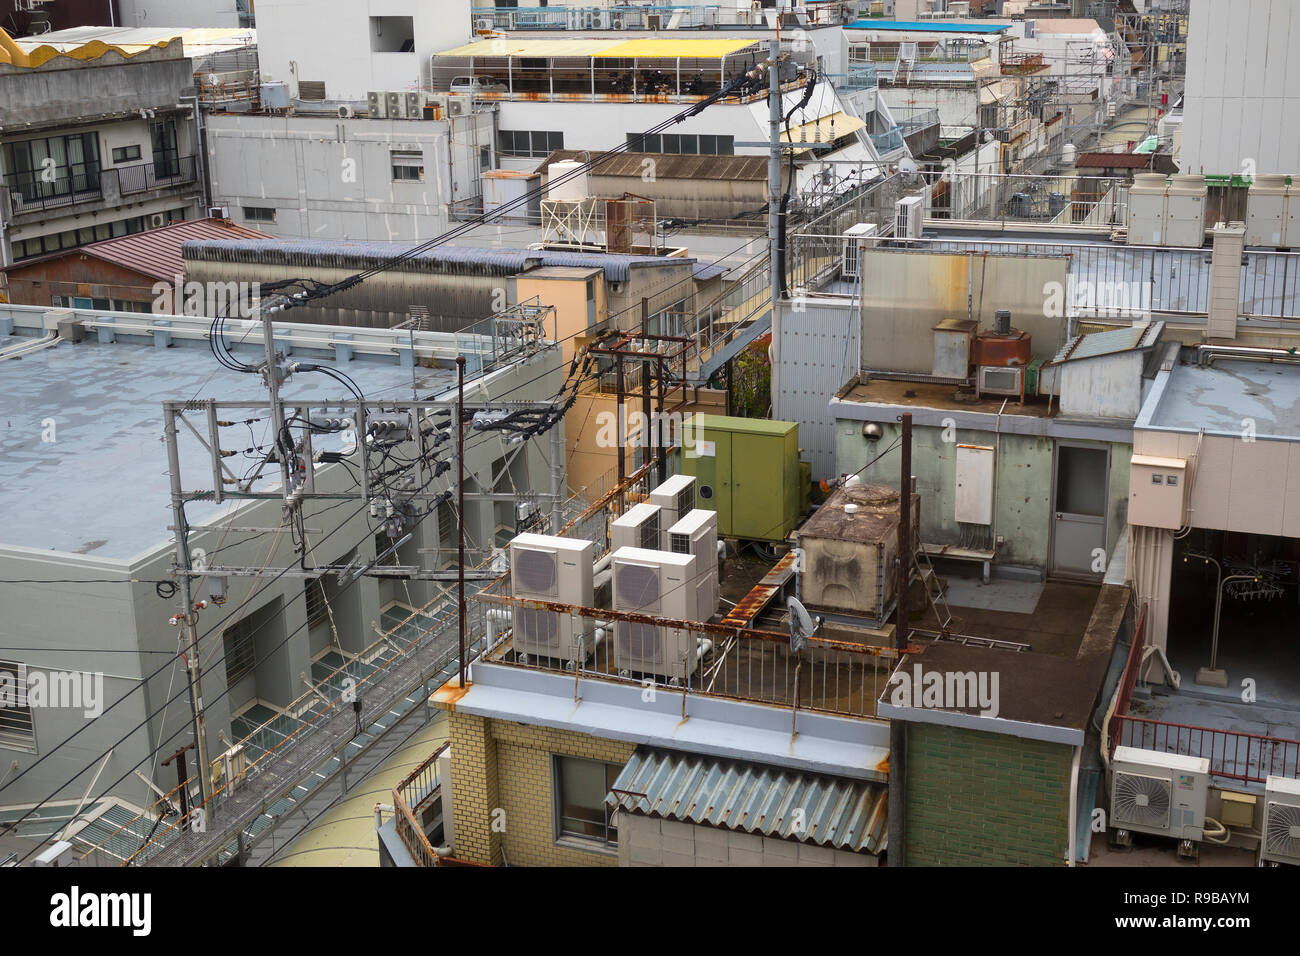 Nagasaki, Japan - October 23, 2018:  View over the roofs of houses with air conditioning boxes, watertanks and electricity connections - Stock Image